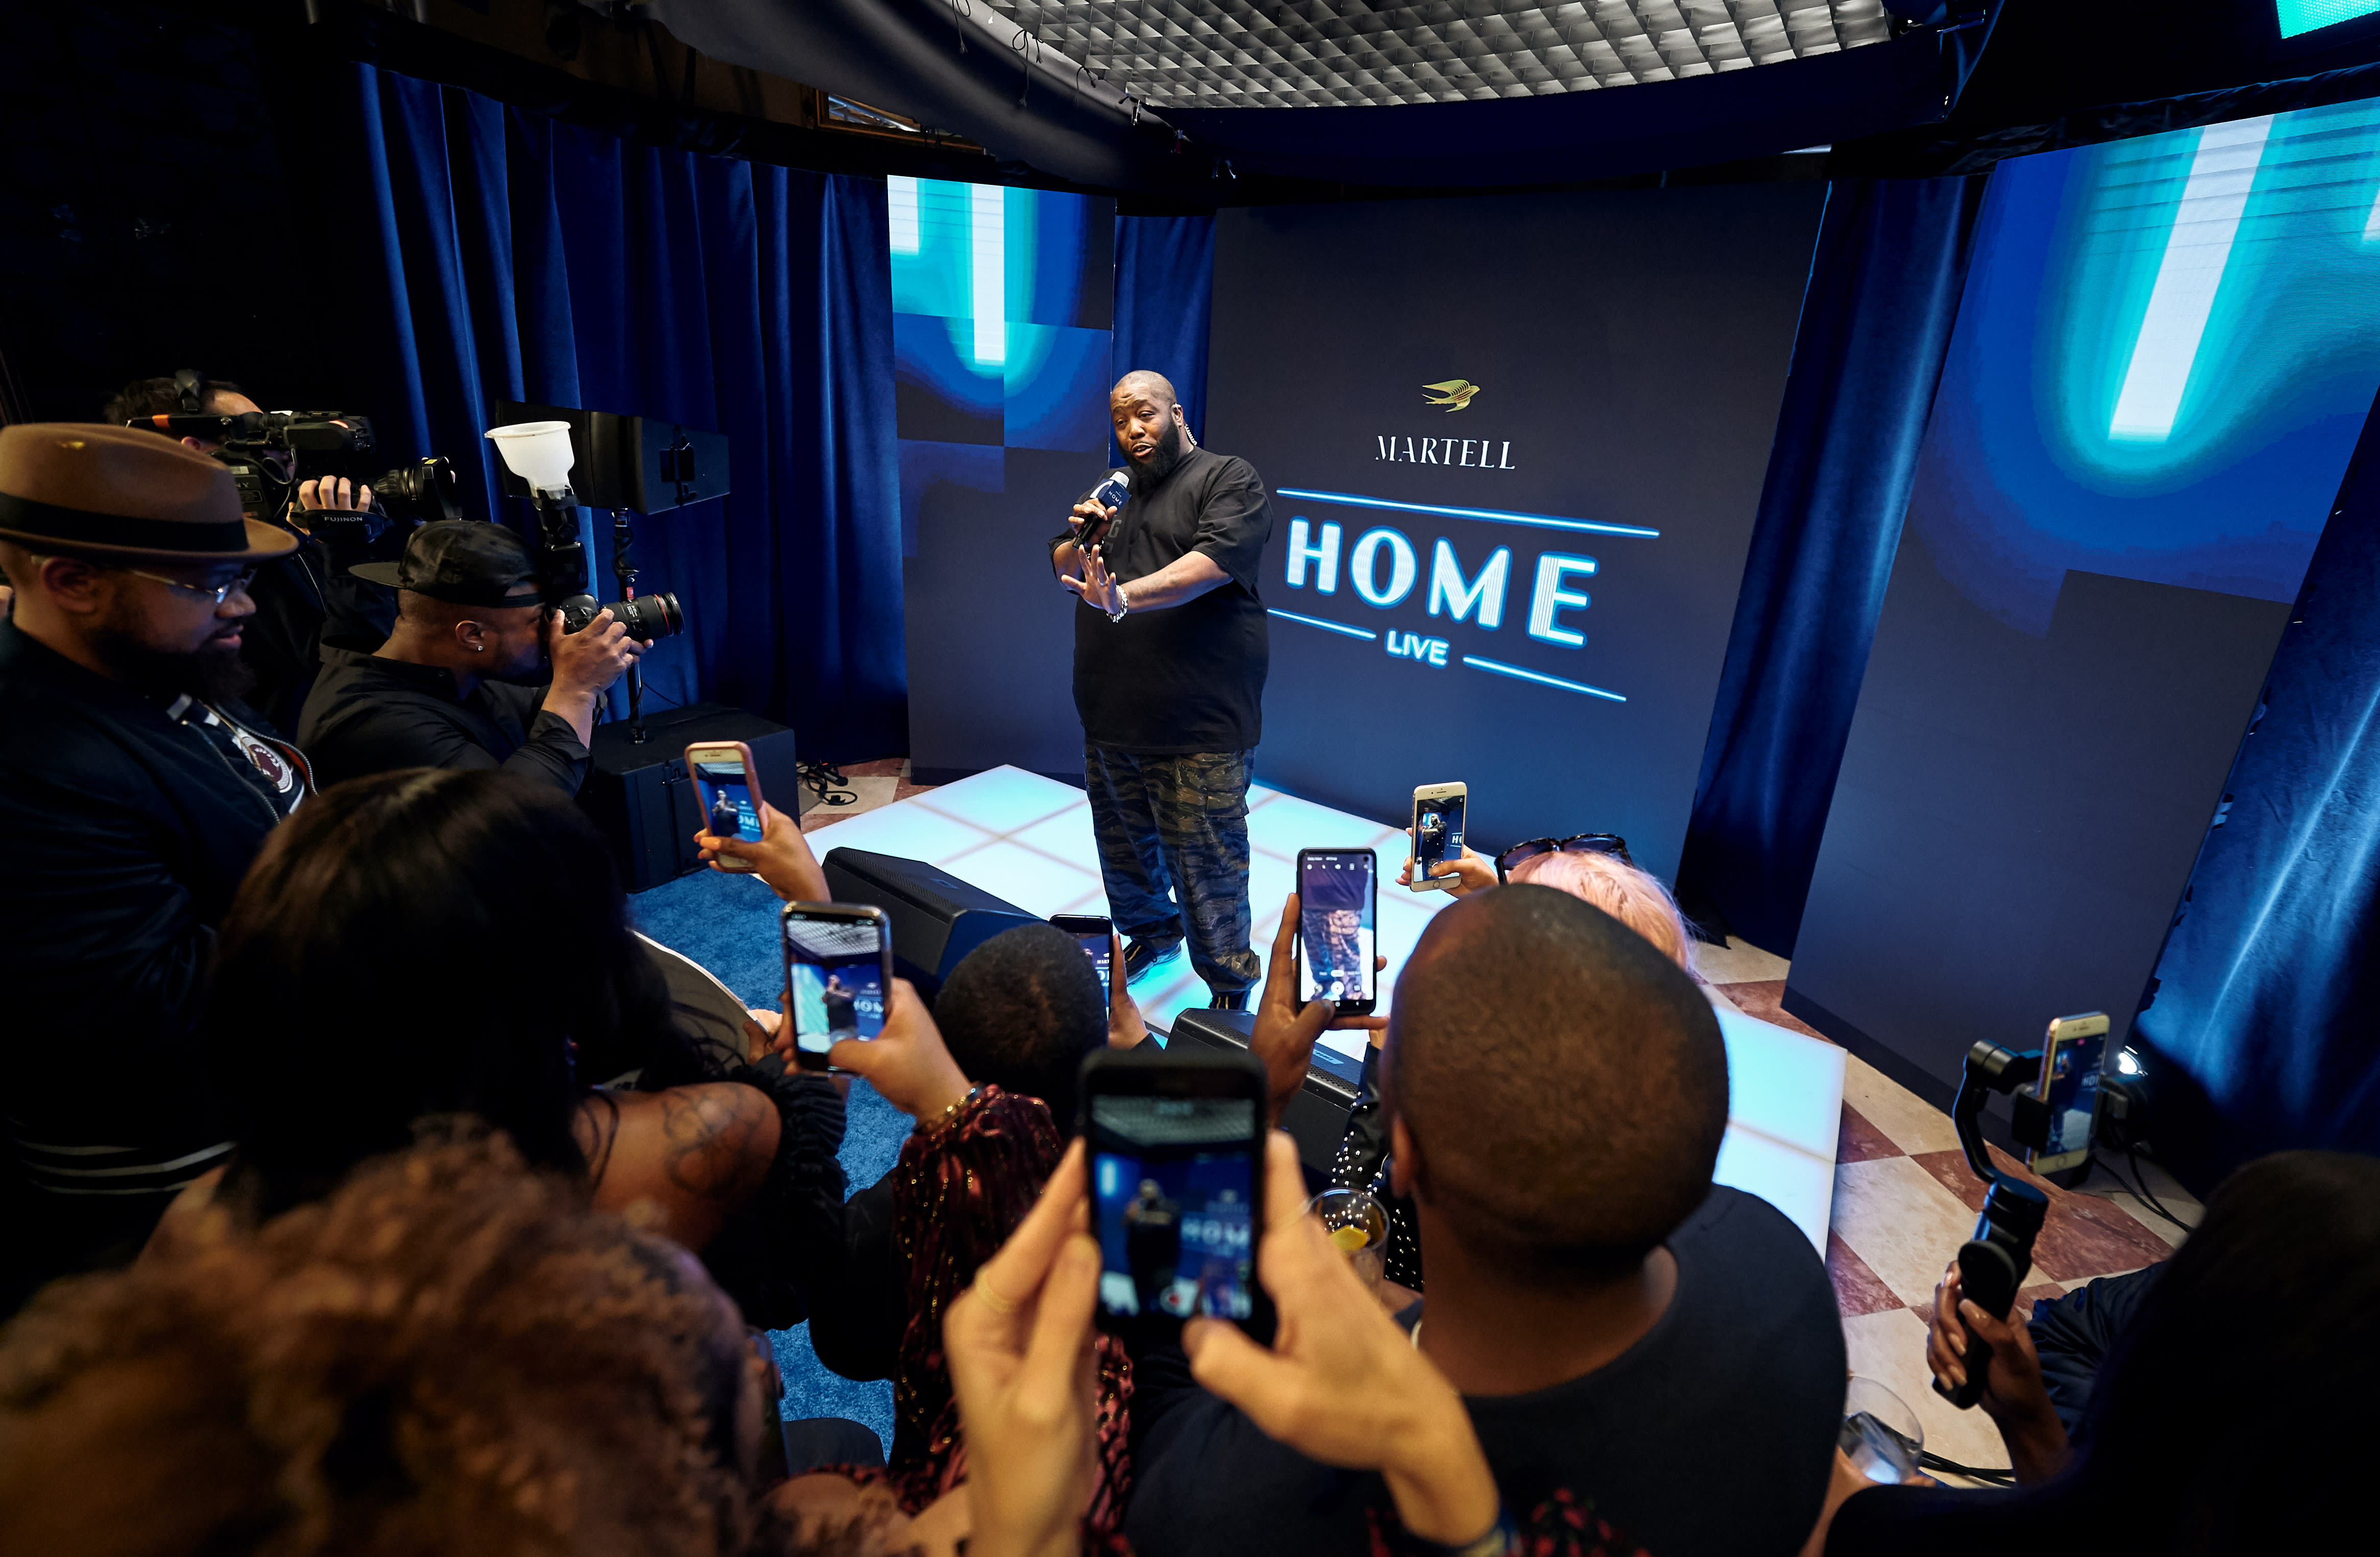 martell-home-live